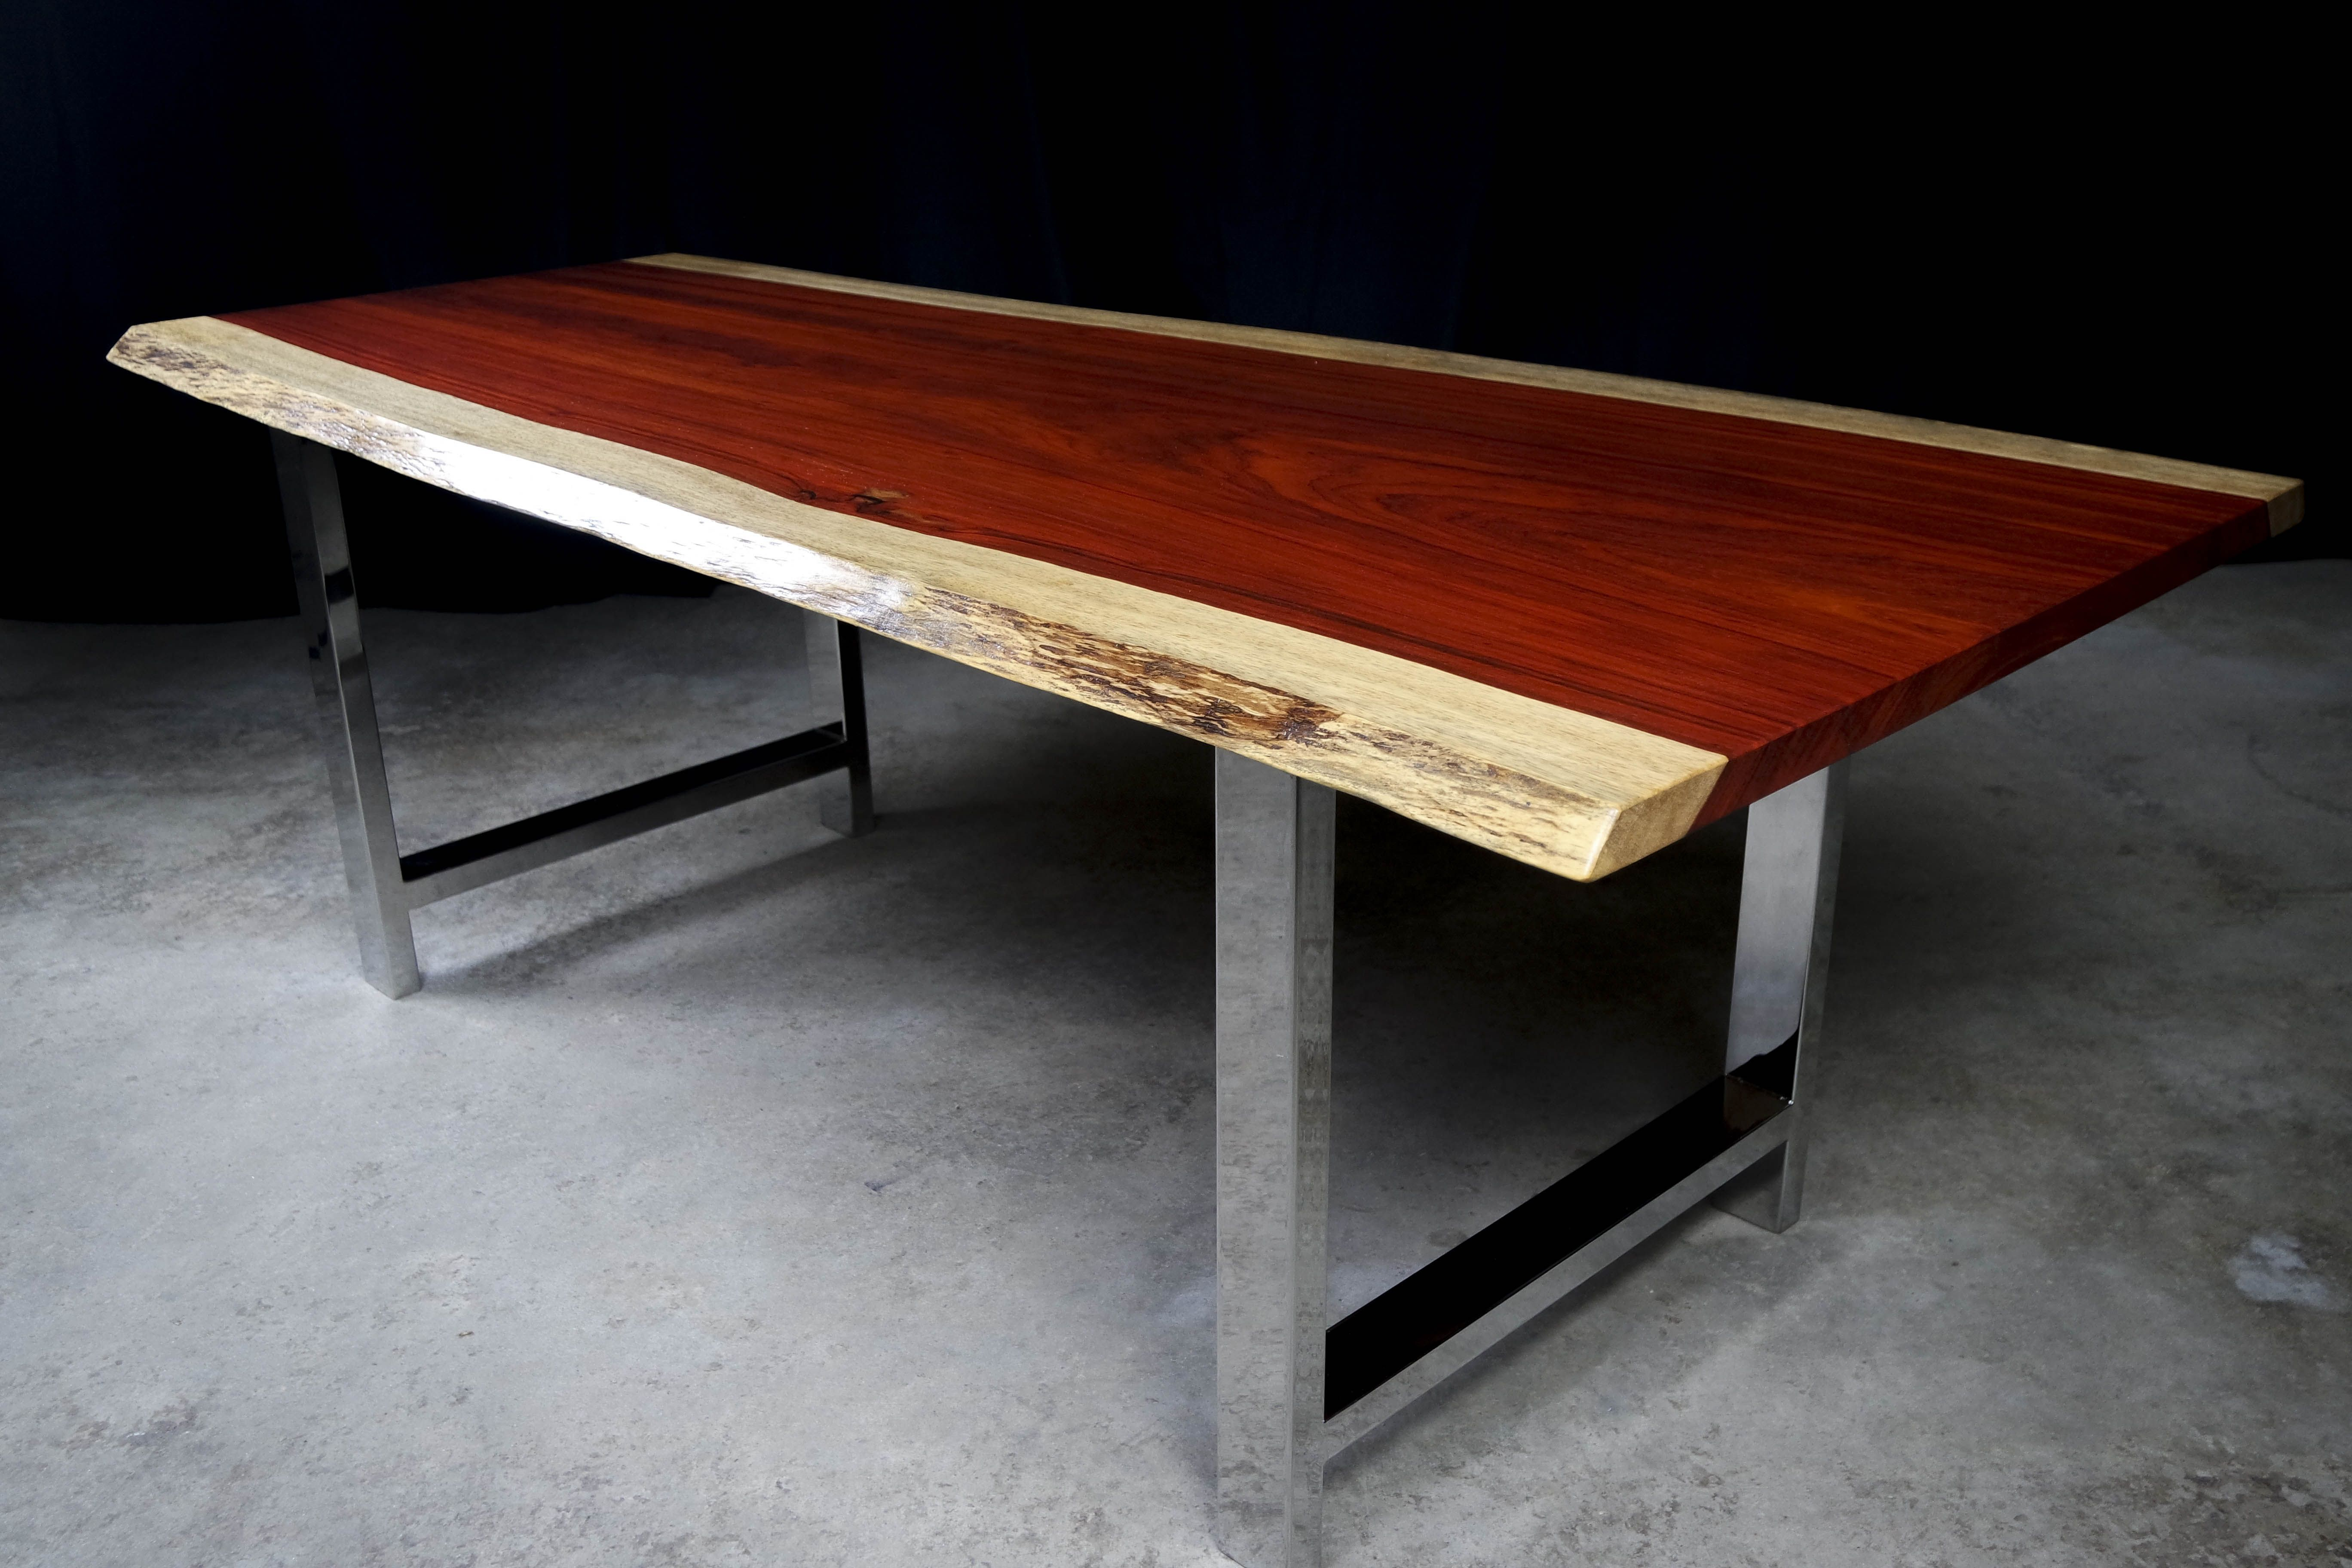 Live Edge Padauk Slab Dining Table With Chrome Legs By MericanRusticLLC On Etsy